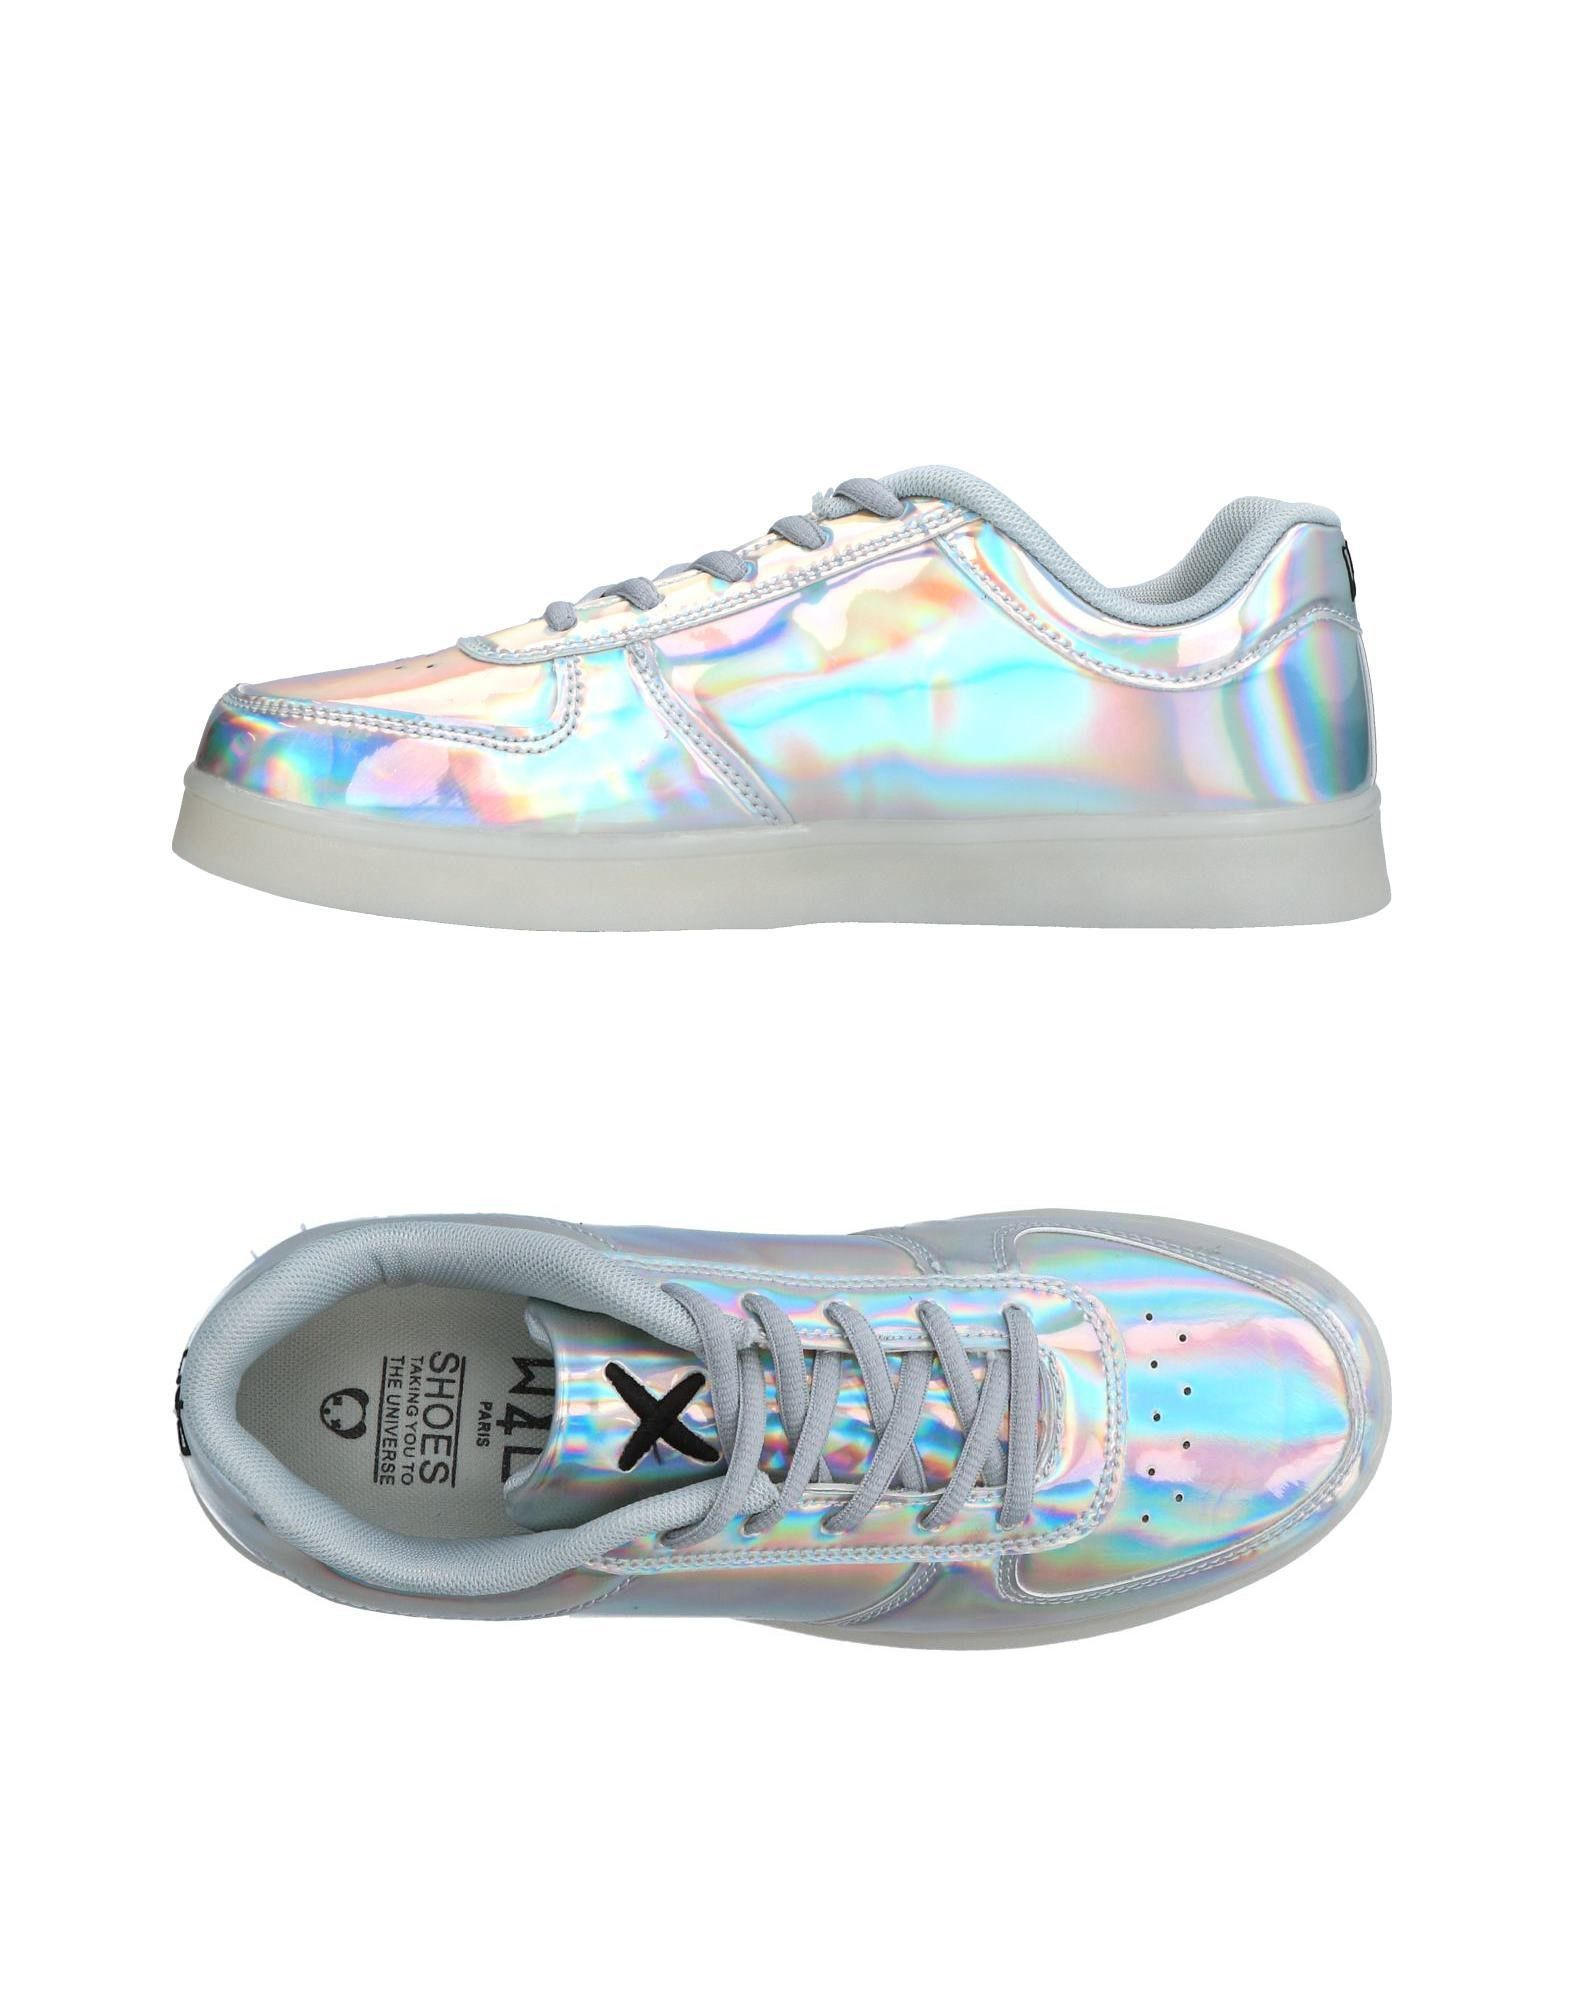 Wize Ope & Ope Sneakers - Women Wize & Ope Wize Sneakers online on  Canada - 11361972SD 8b6a20